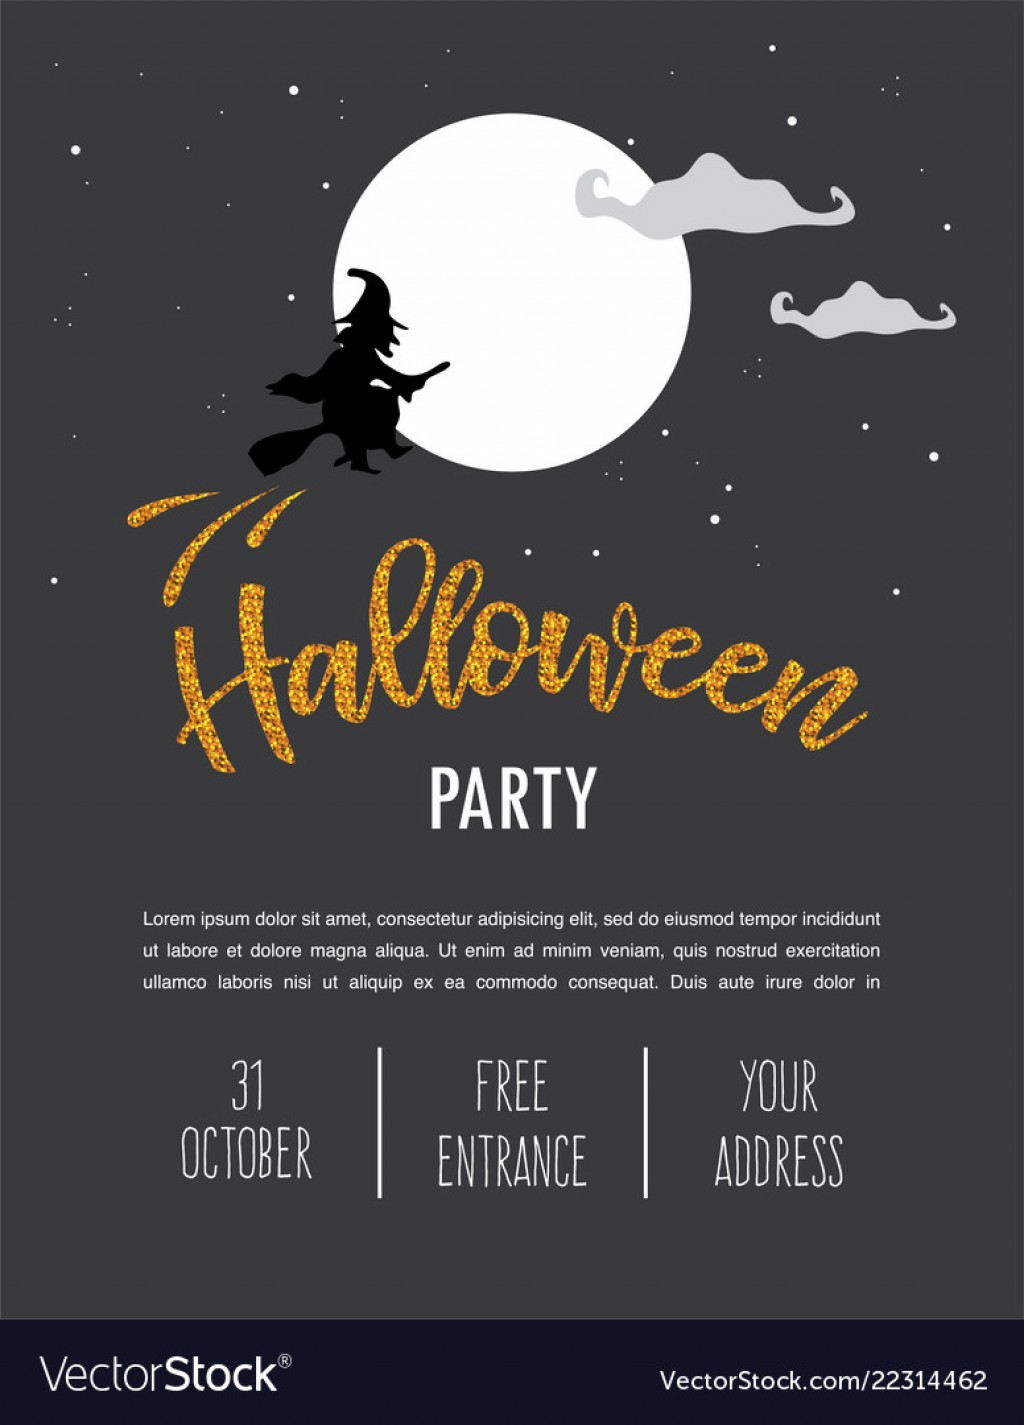 007 Exceptional Free Halloween Party Invitation Template High Definition  Printable Birthday For Word DownloadLarge